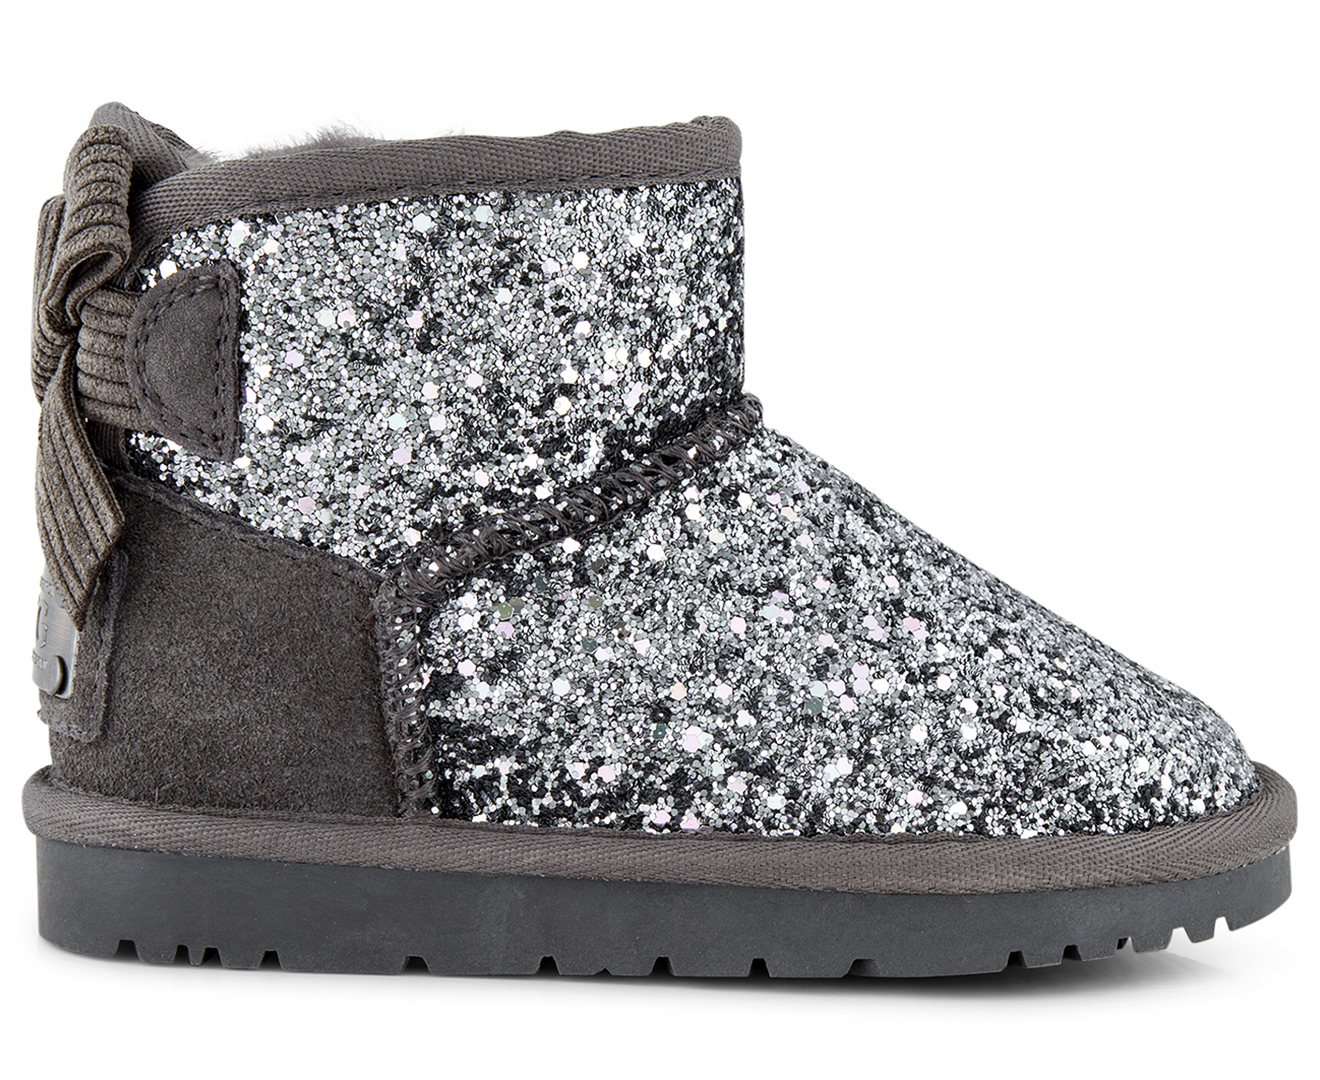 d00bb1f2e7c OZWEAR Connection Girls' Bailey Corduroy Bow Sparkling Ugg Boot - Charcoal